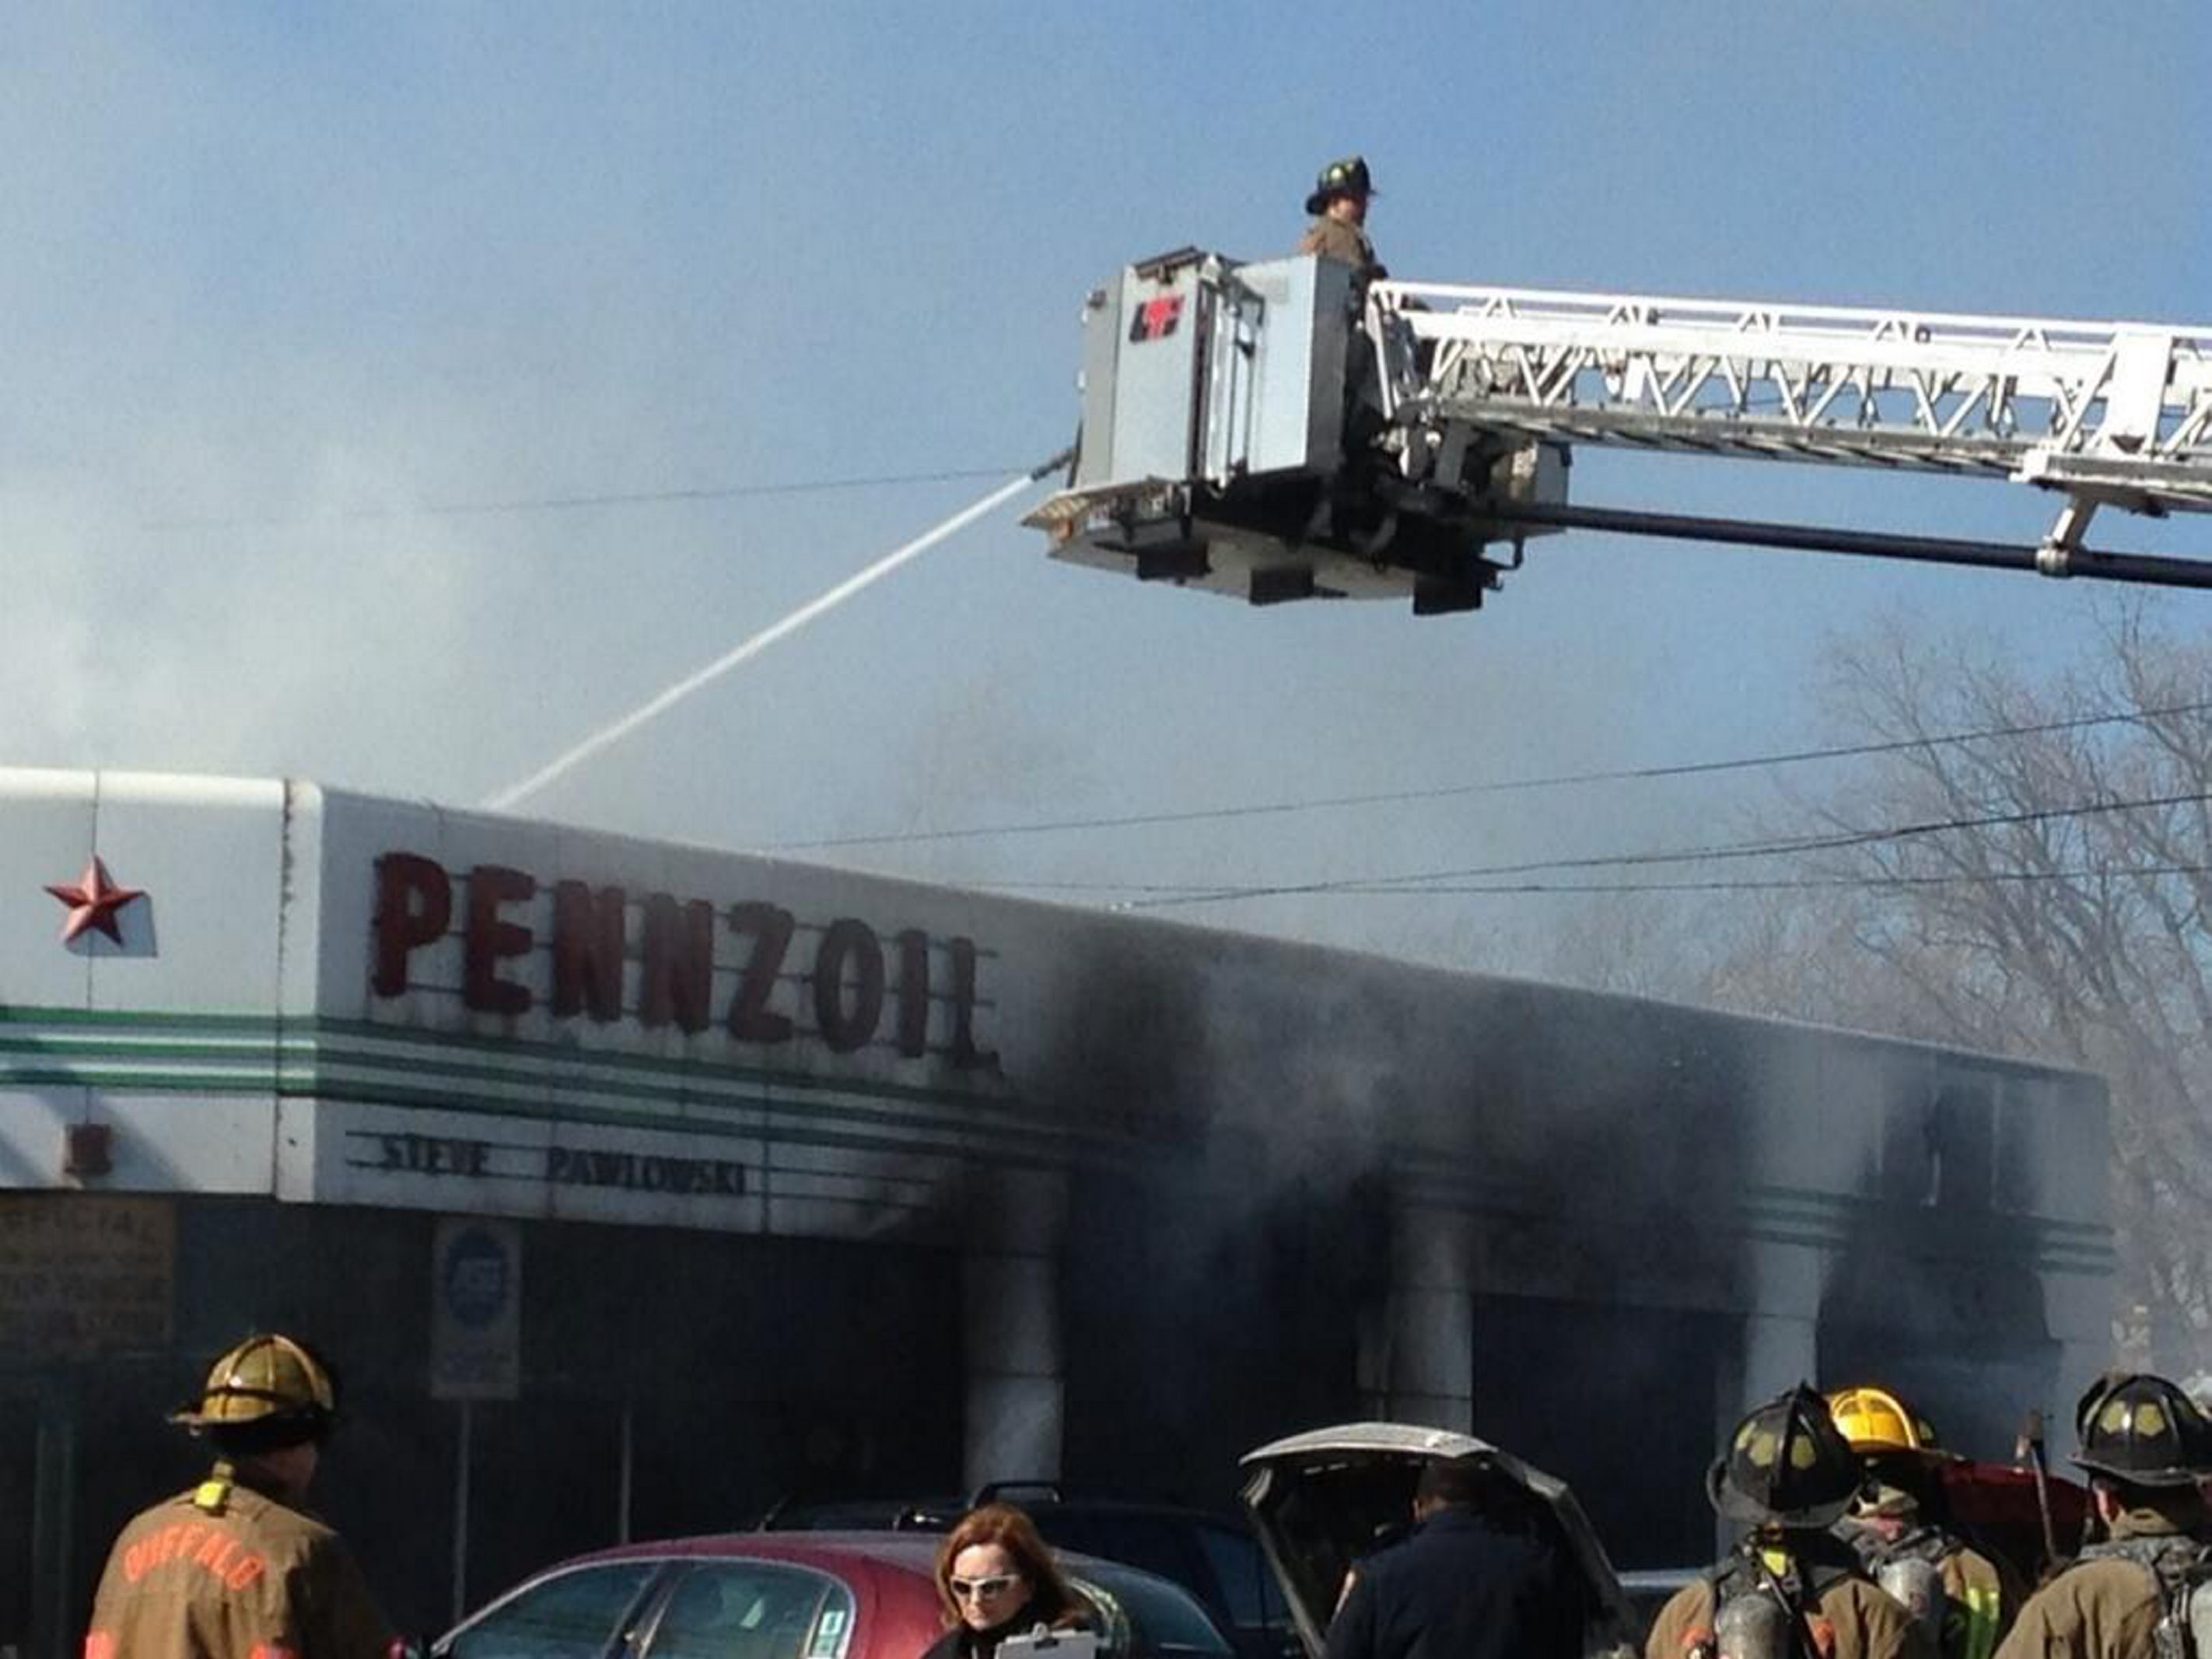 The scene at Genesee Street and East End in Buffalo this afternoon. See a photo gallery at BuffaloNews.com.